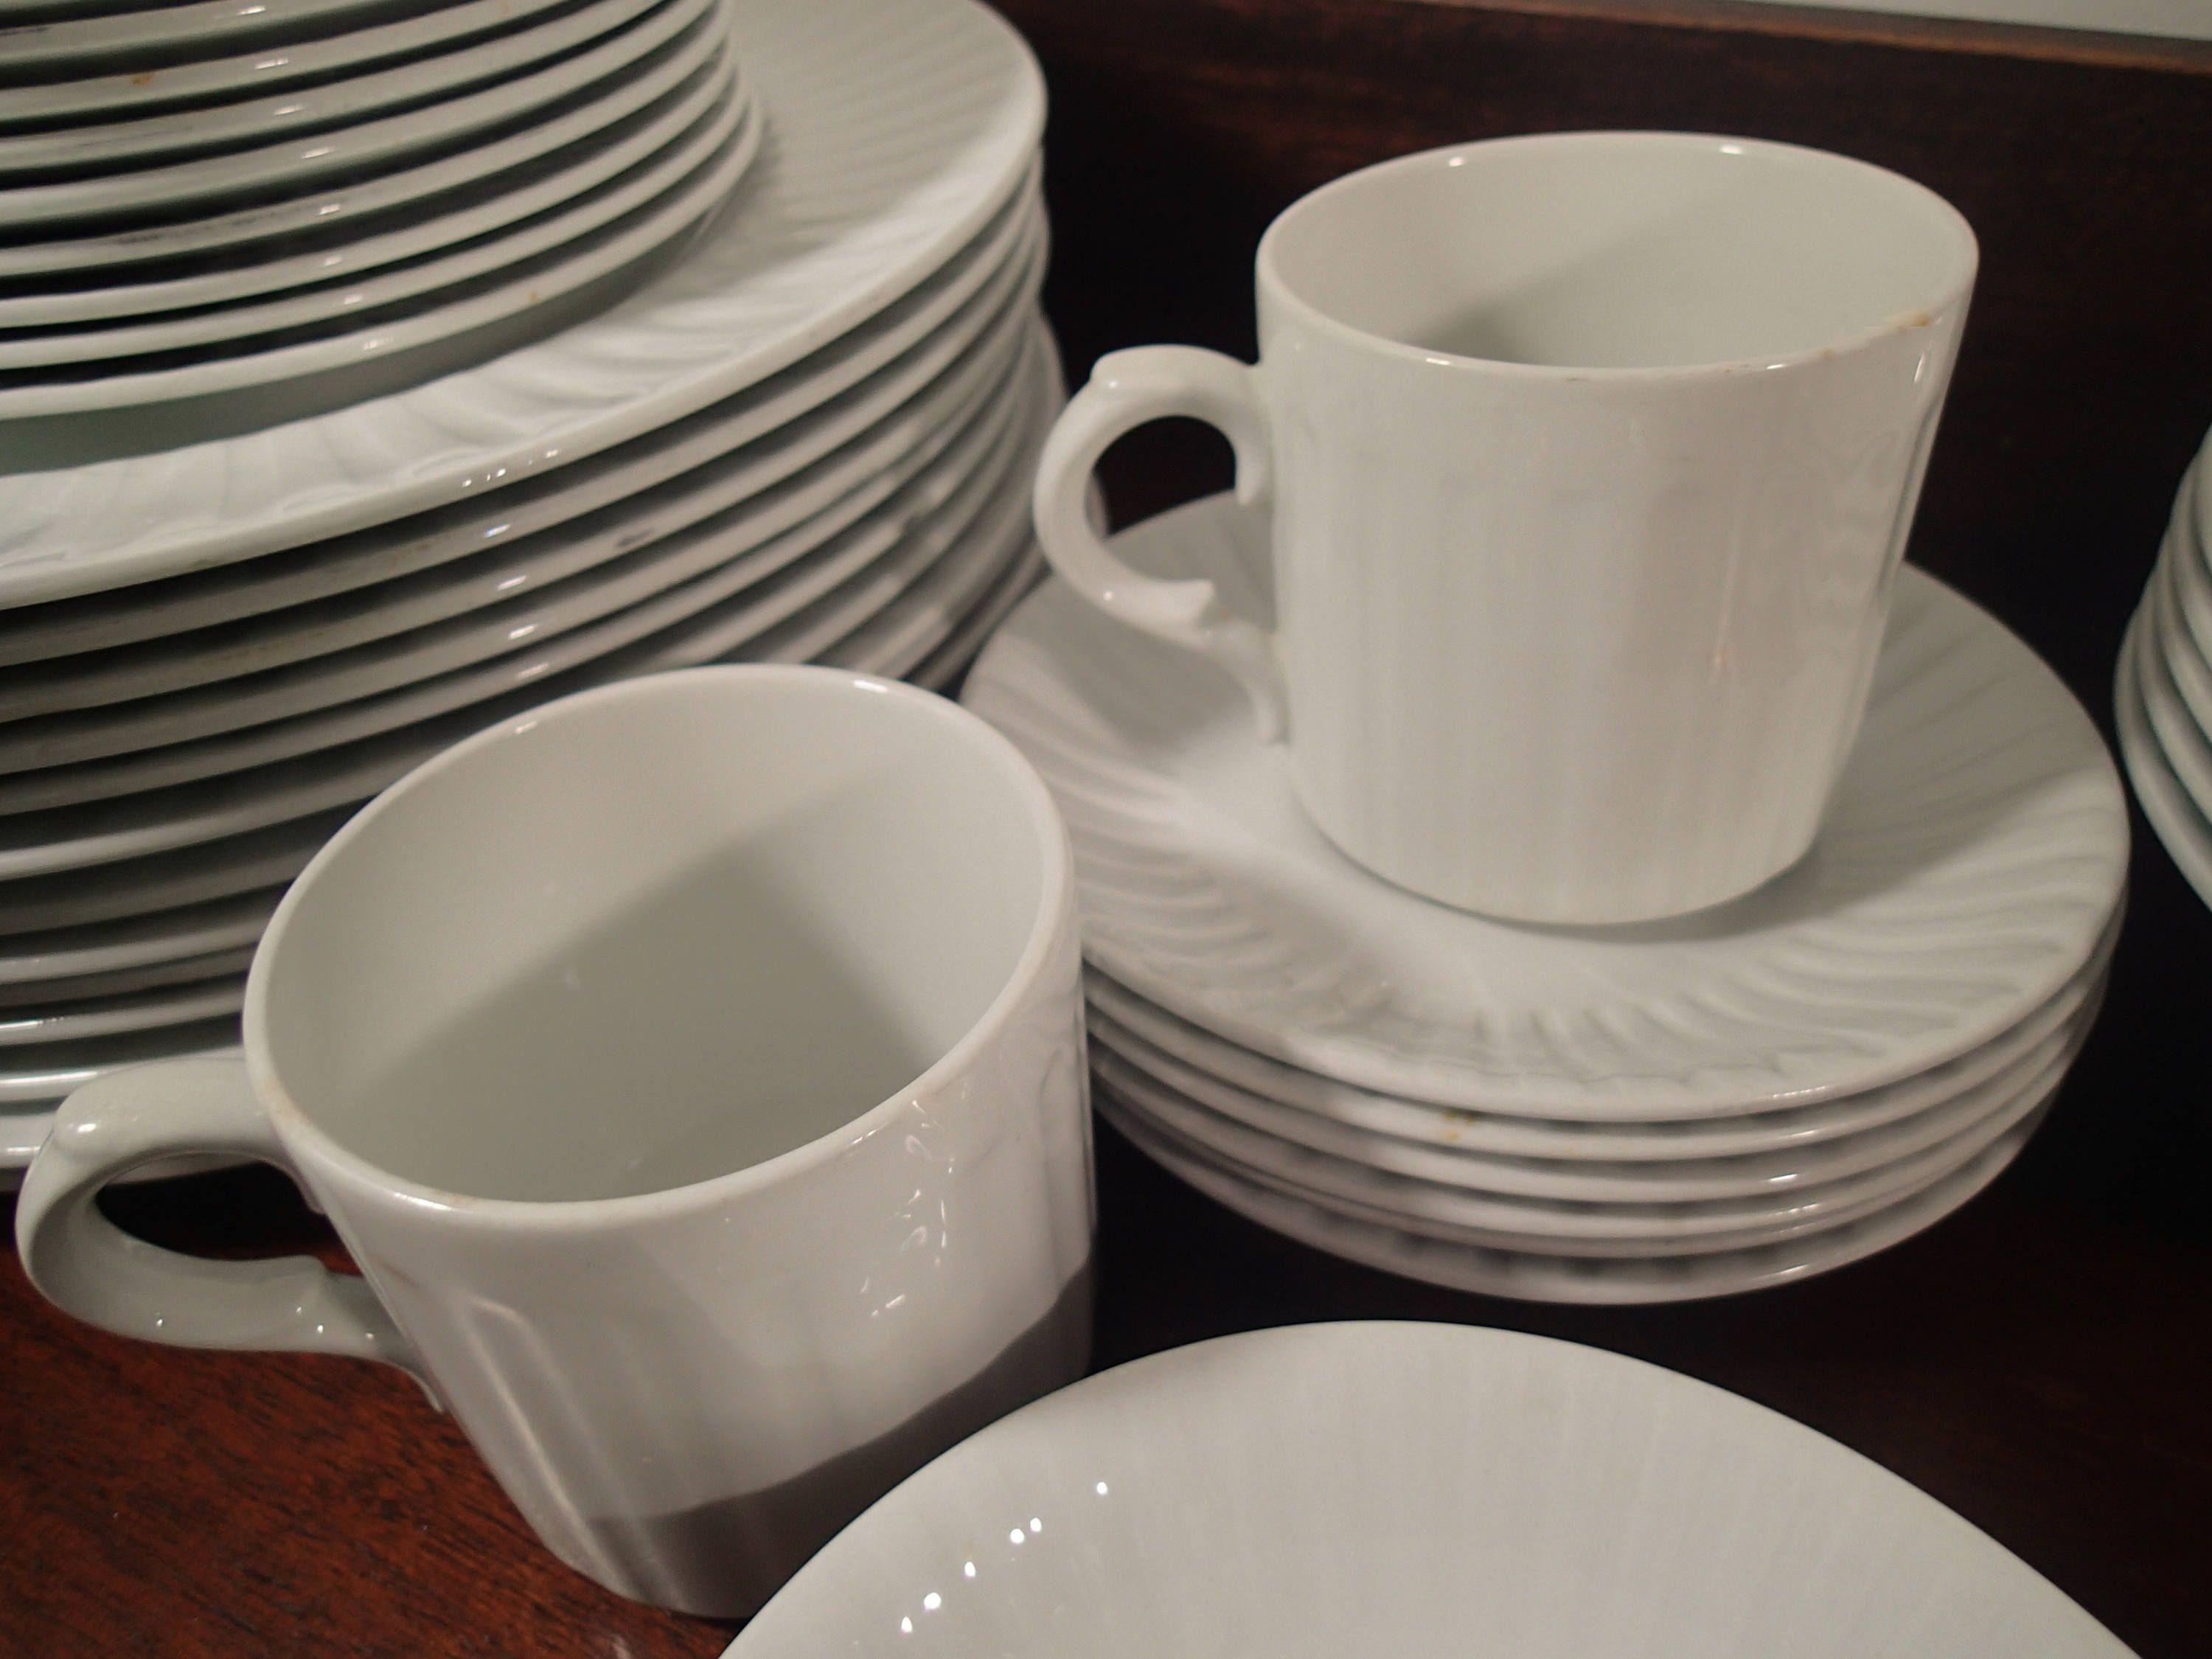 Alfred Meakin Leeds England Dinnerware set Traditional Ironstone 36 piece set Solid White Mid Century ribbed design 1940s 1950s 1960s & Alfred Meakin Leeds England Dinnerware set Traditional Ironstone 36 ...